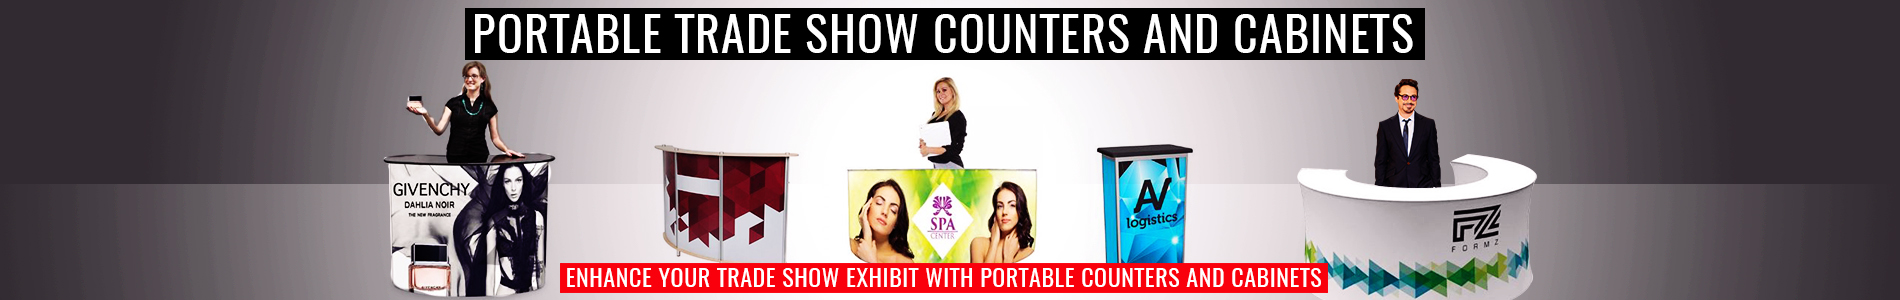 Portable Trade Show Counters & Cabinets